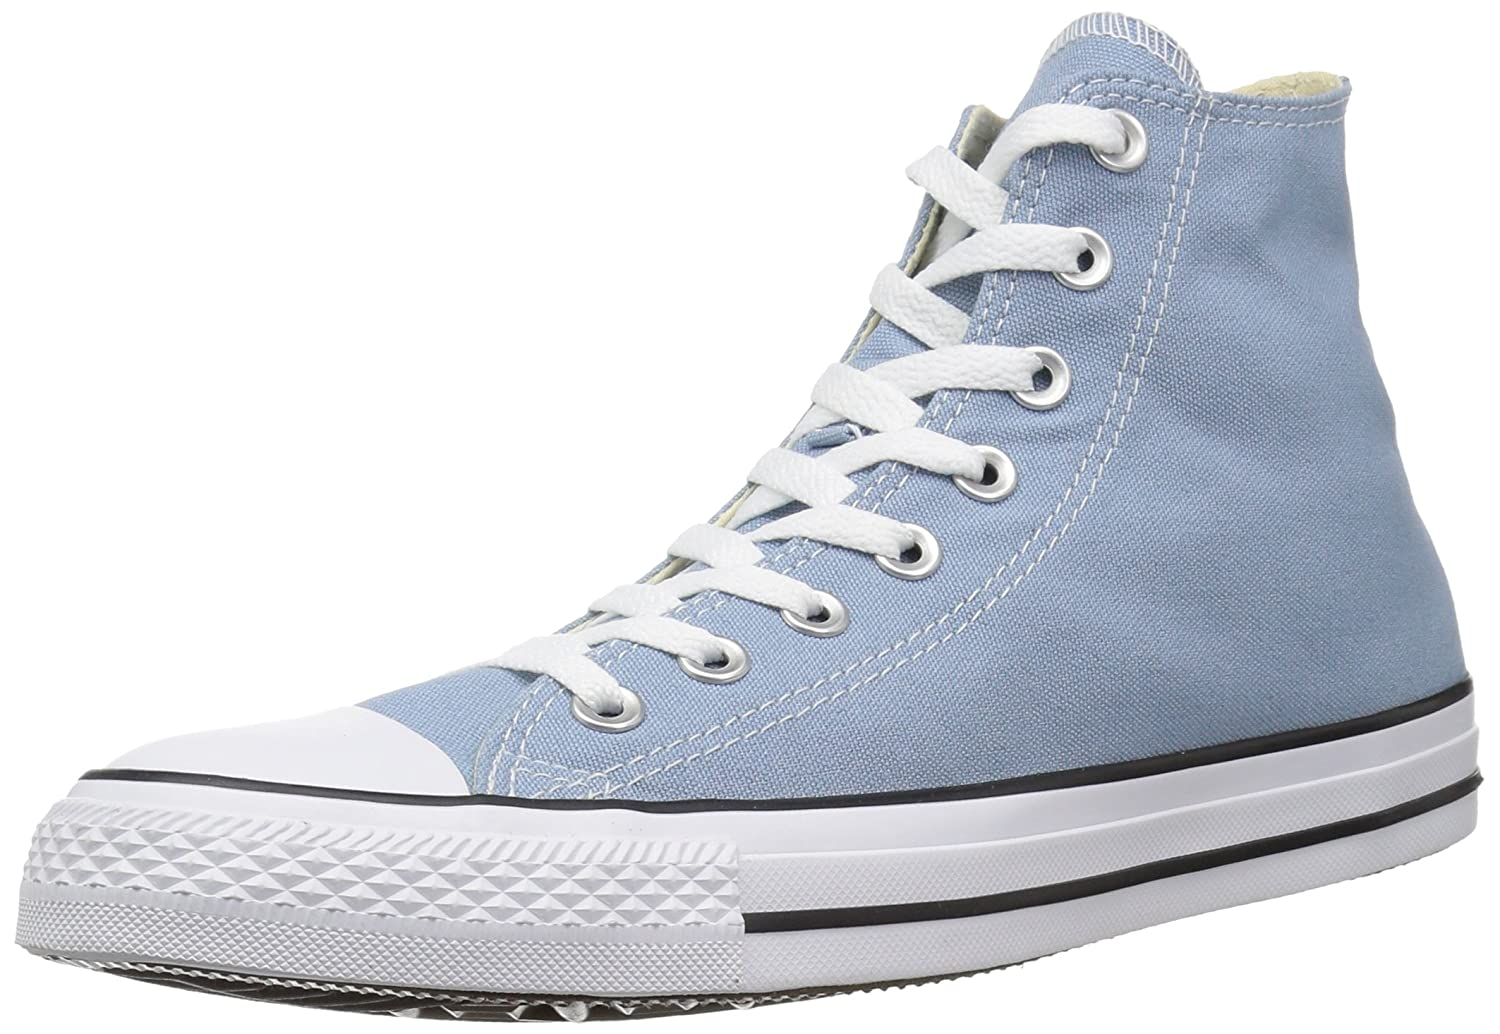 Converse Chuck Taylor Etoiles Washed Low 17794 Chuck Top Sneakers Sneaker Mode Washed Denim d3dbe41 - shopssong.space